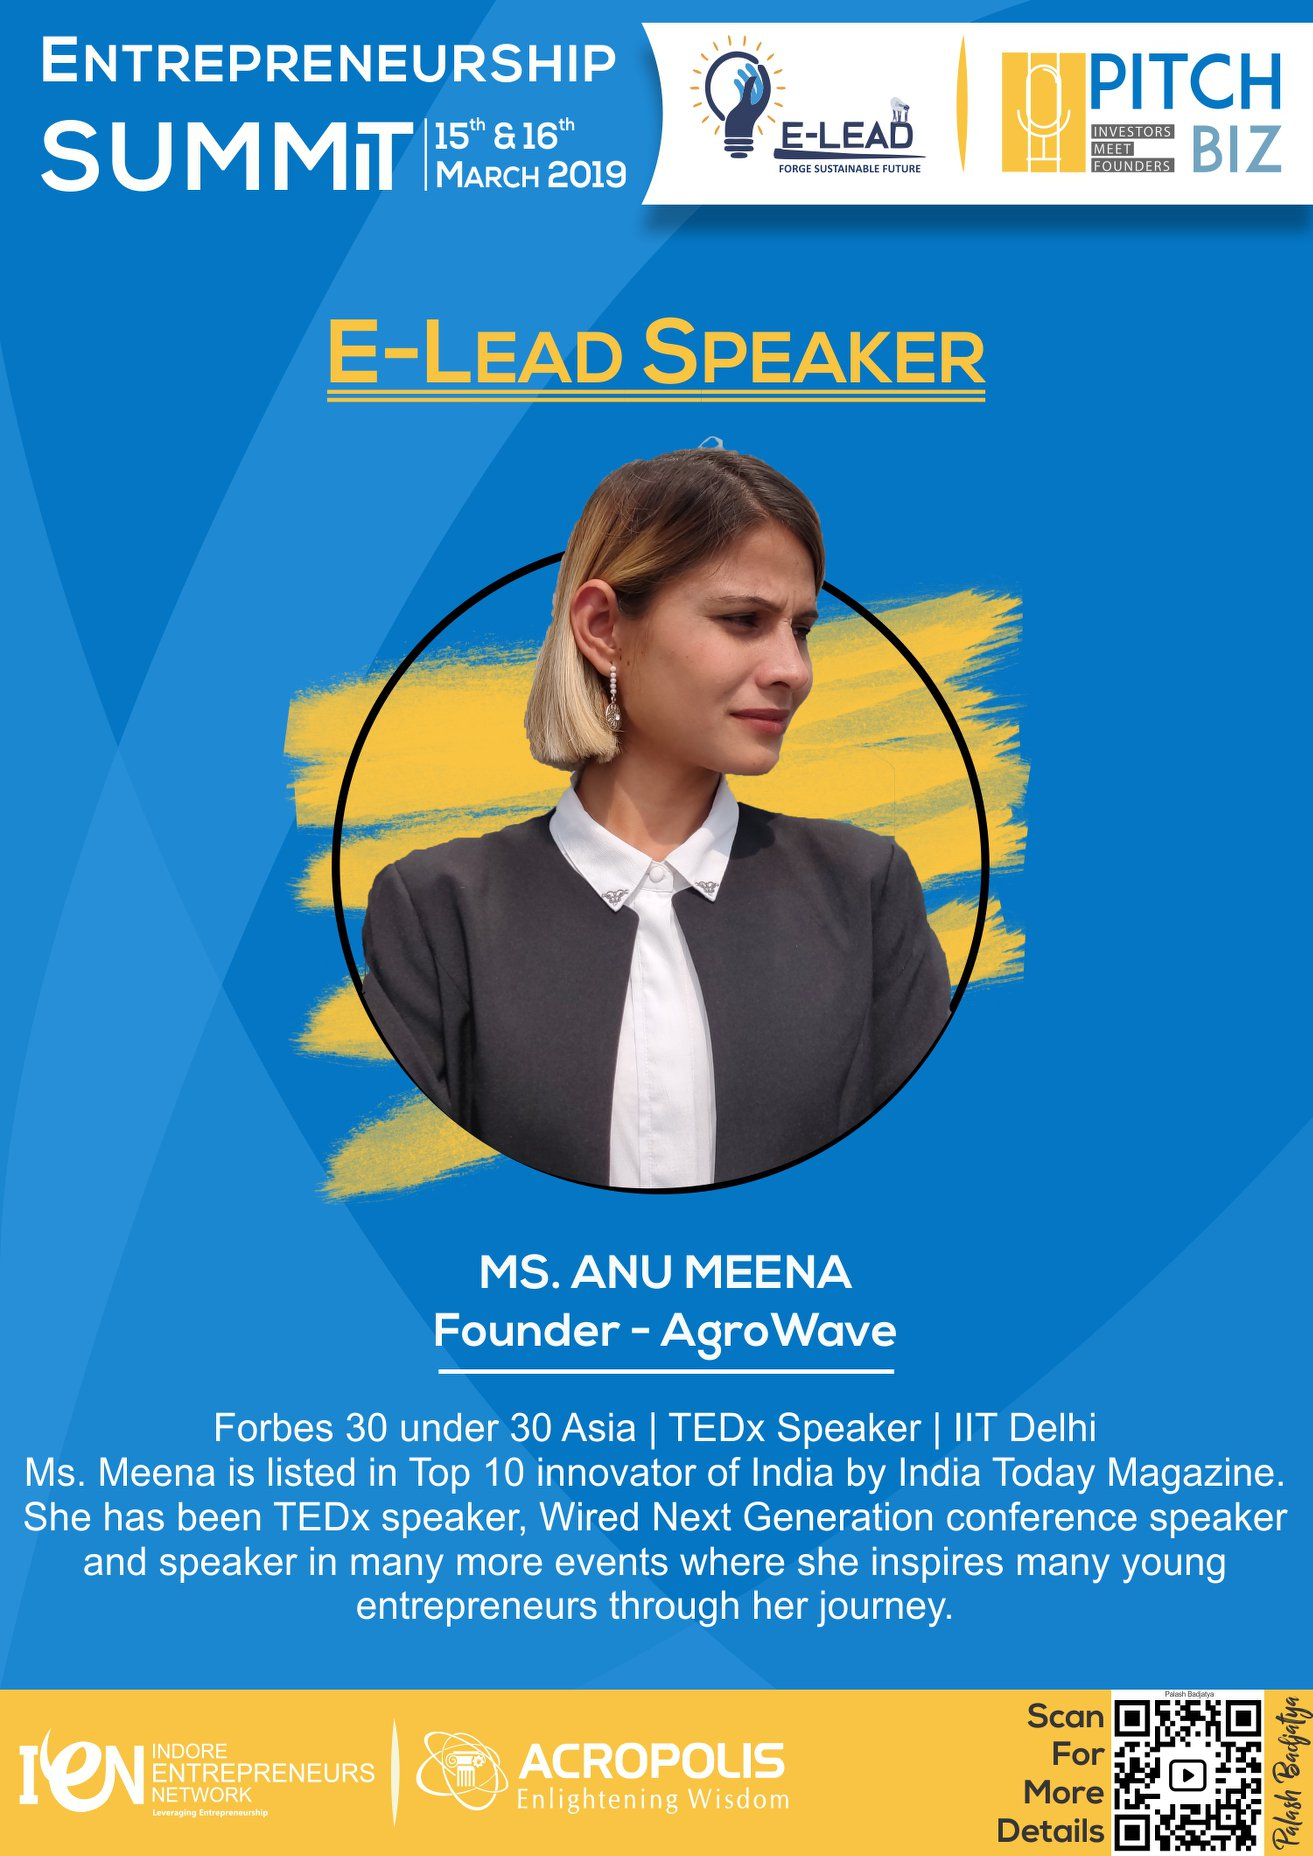 E-Lead and PitchBiz 2019 Tickets by SRIJAN Acropolis E Cell, 15 Mar, 2019,  Indore Event